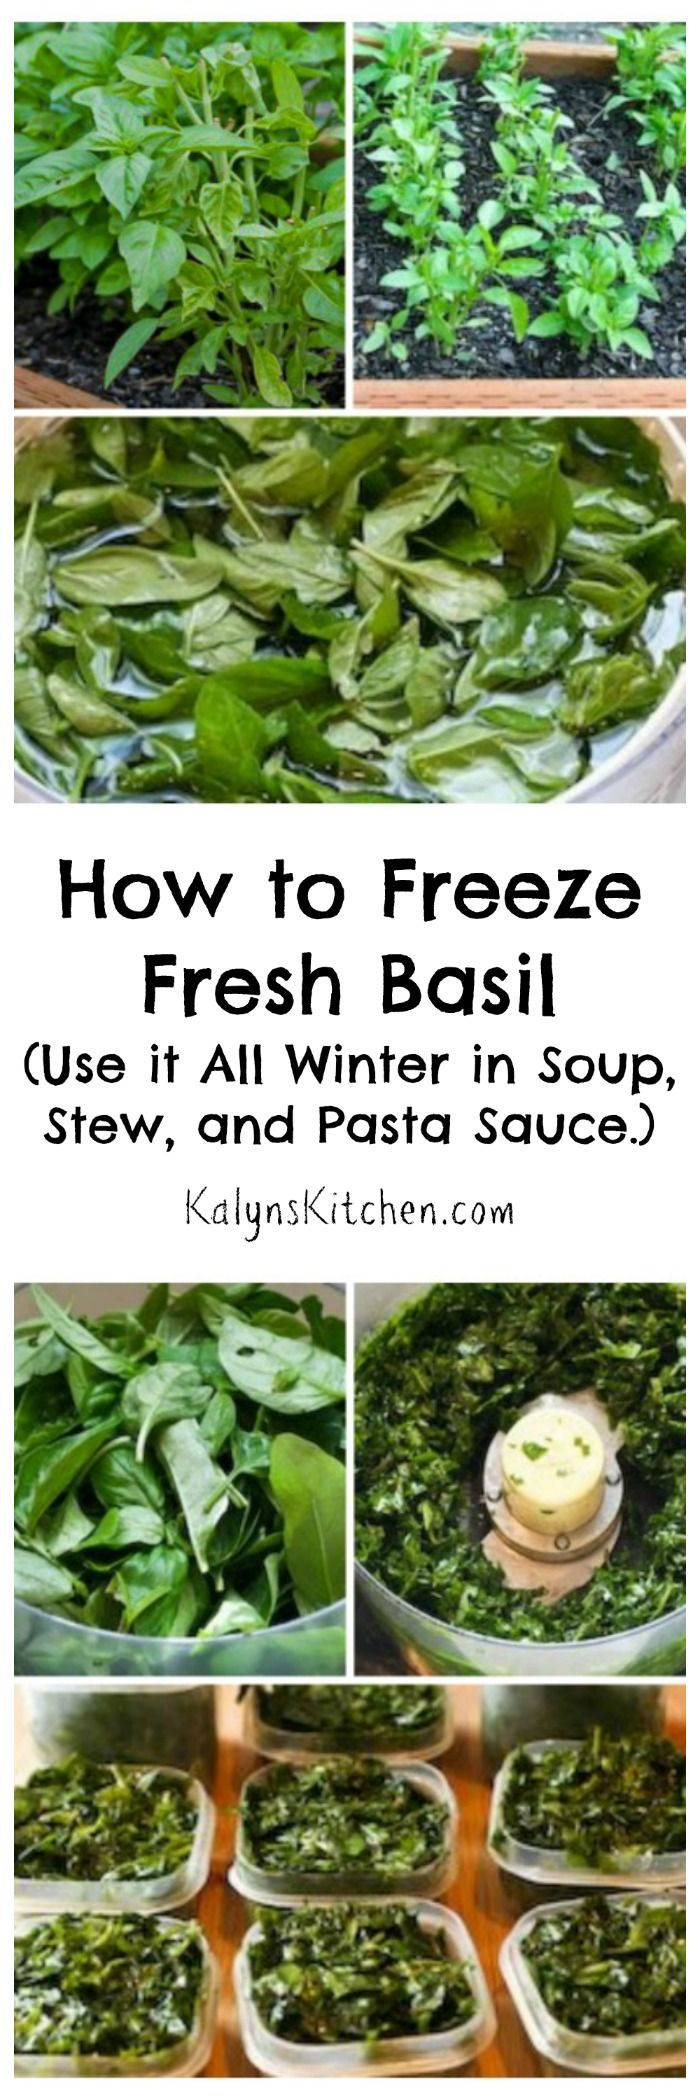 For years and years I've been trimming my garden basil, freezing it, and then using the basil all winter in soup, stew, and pasta sauce, and this post has all my tips for successfully freezing basil. [from KalynsKitchen.com]